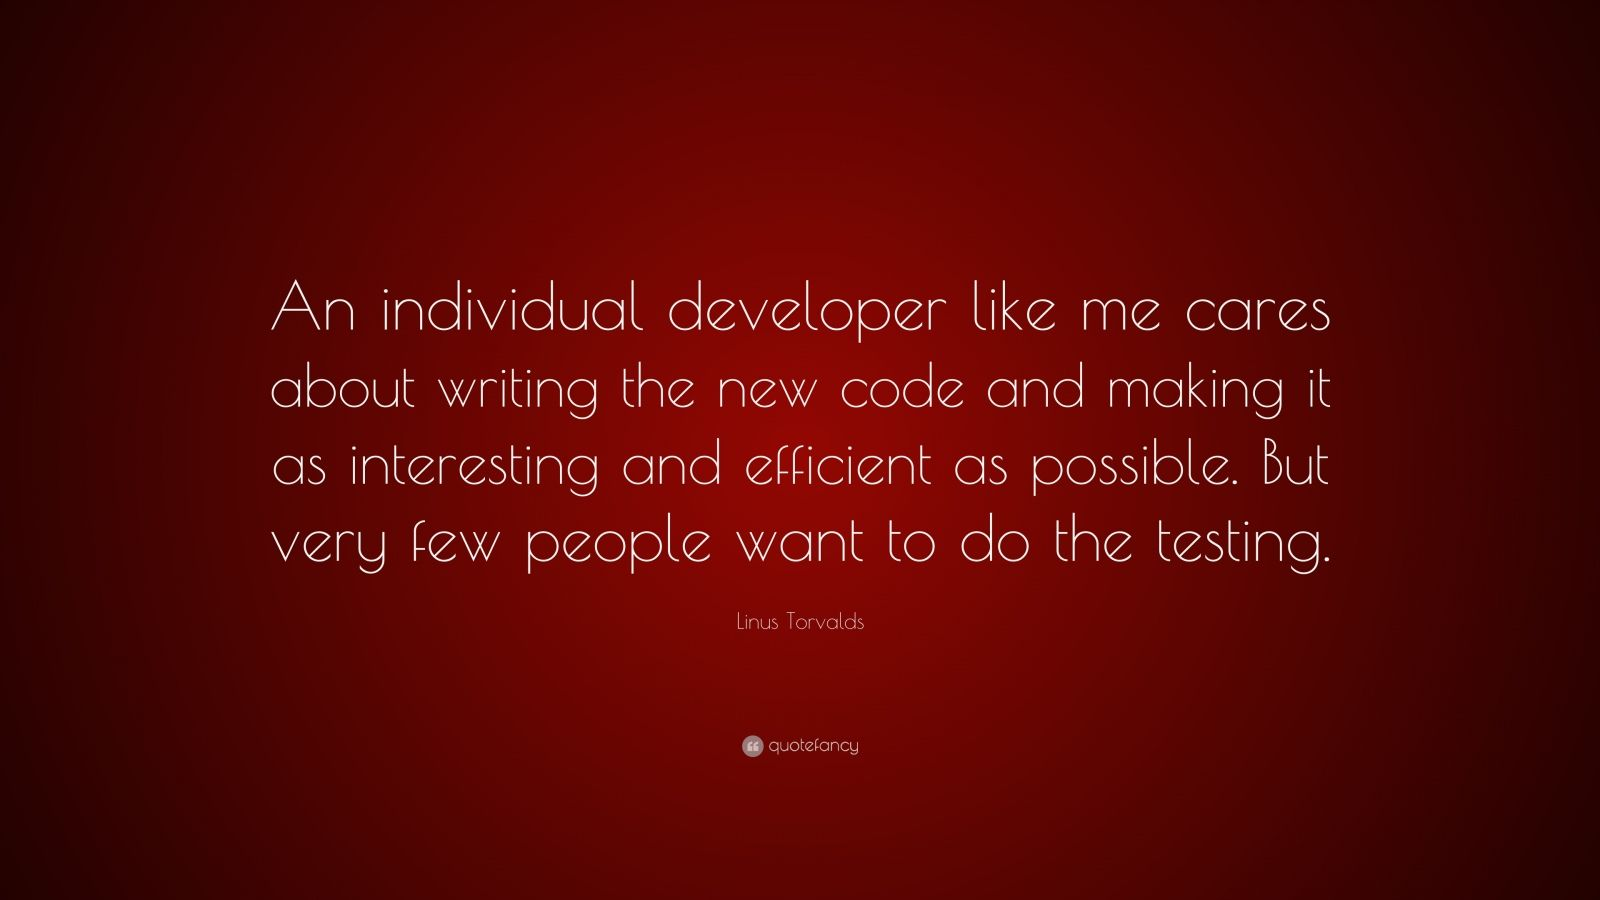 """Linus Torvalds Quote: """"An individual developer like me cares about writing the new code and making it as interesting and efficient as possible. But very few people want to do the testing."""""""